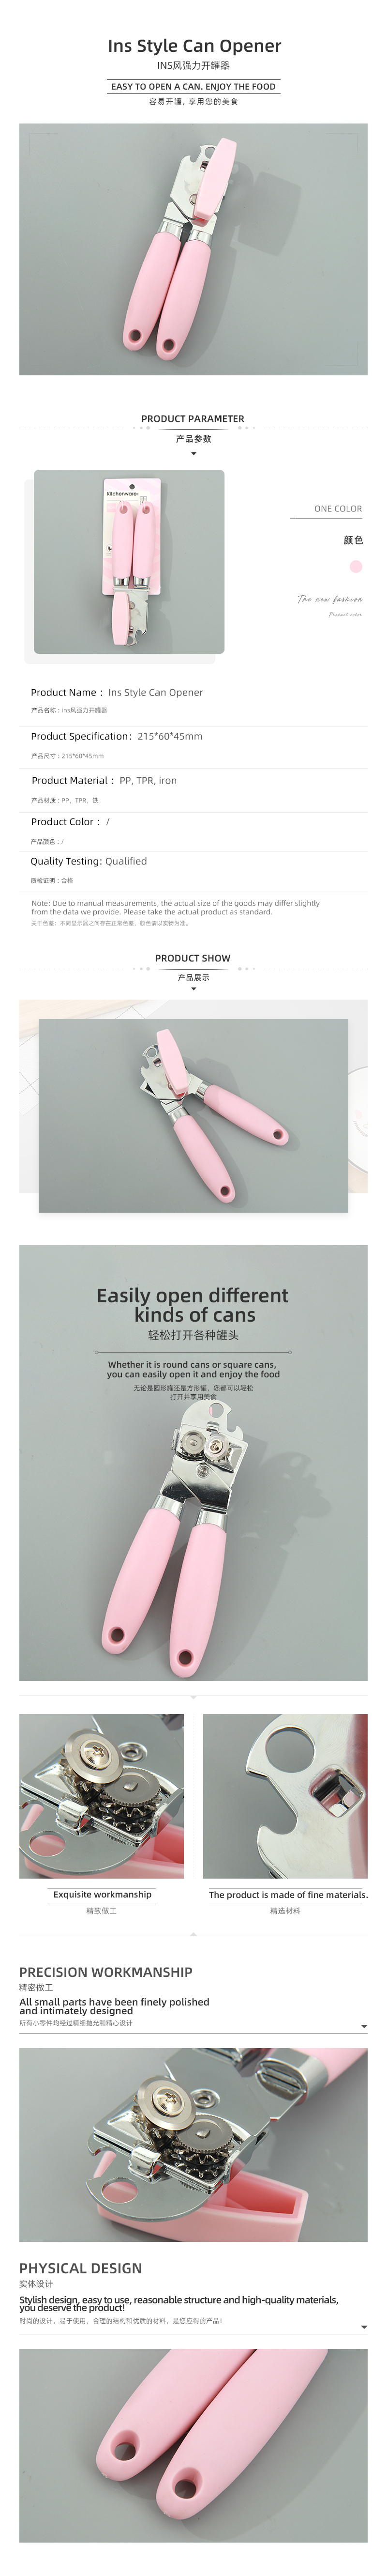 Ins Style Can Opener